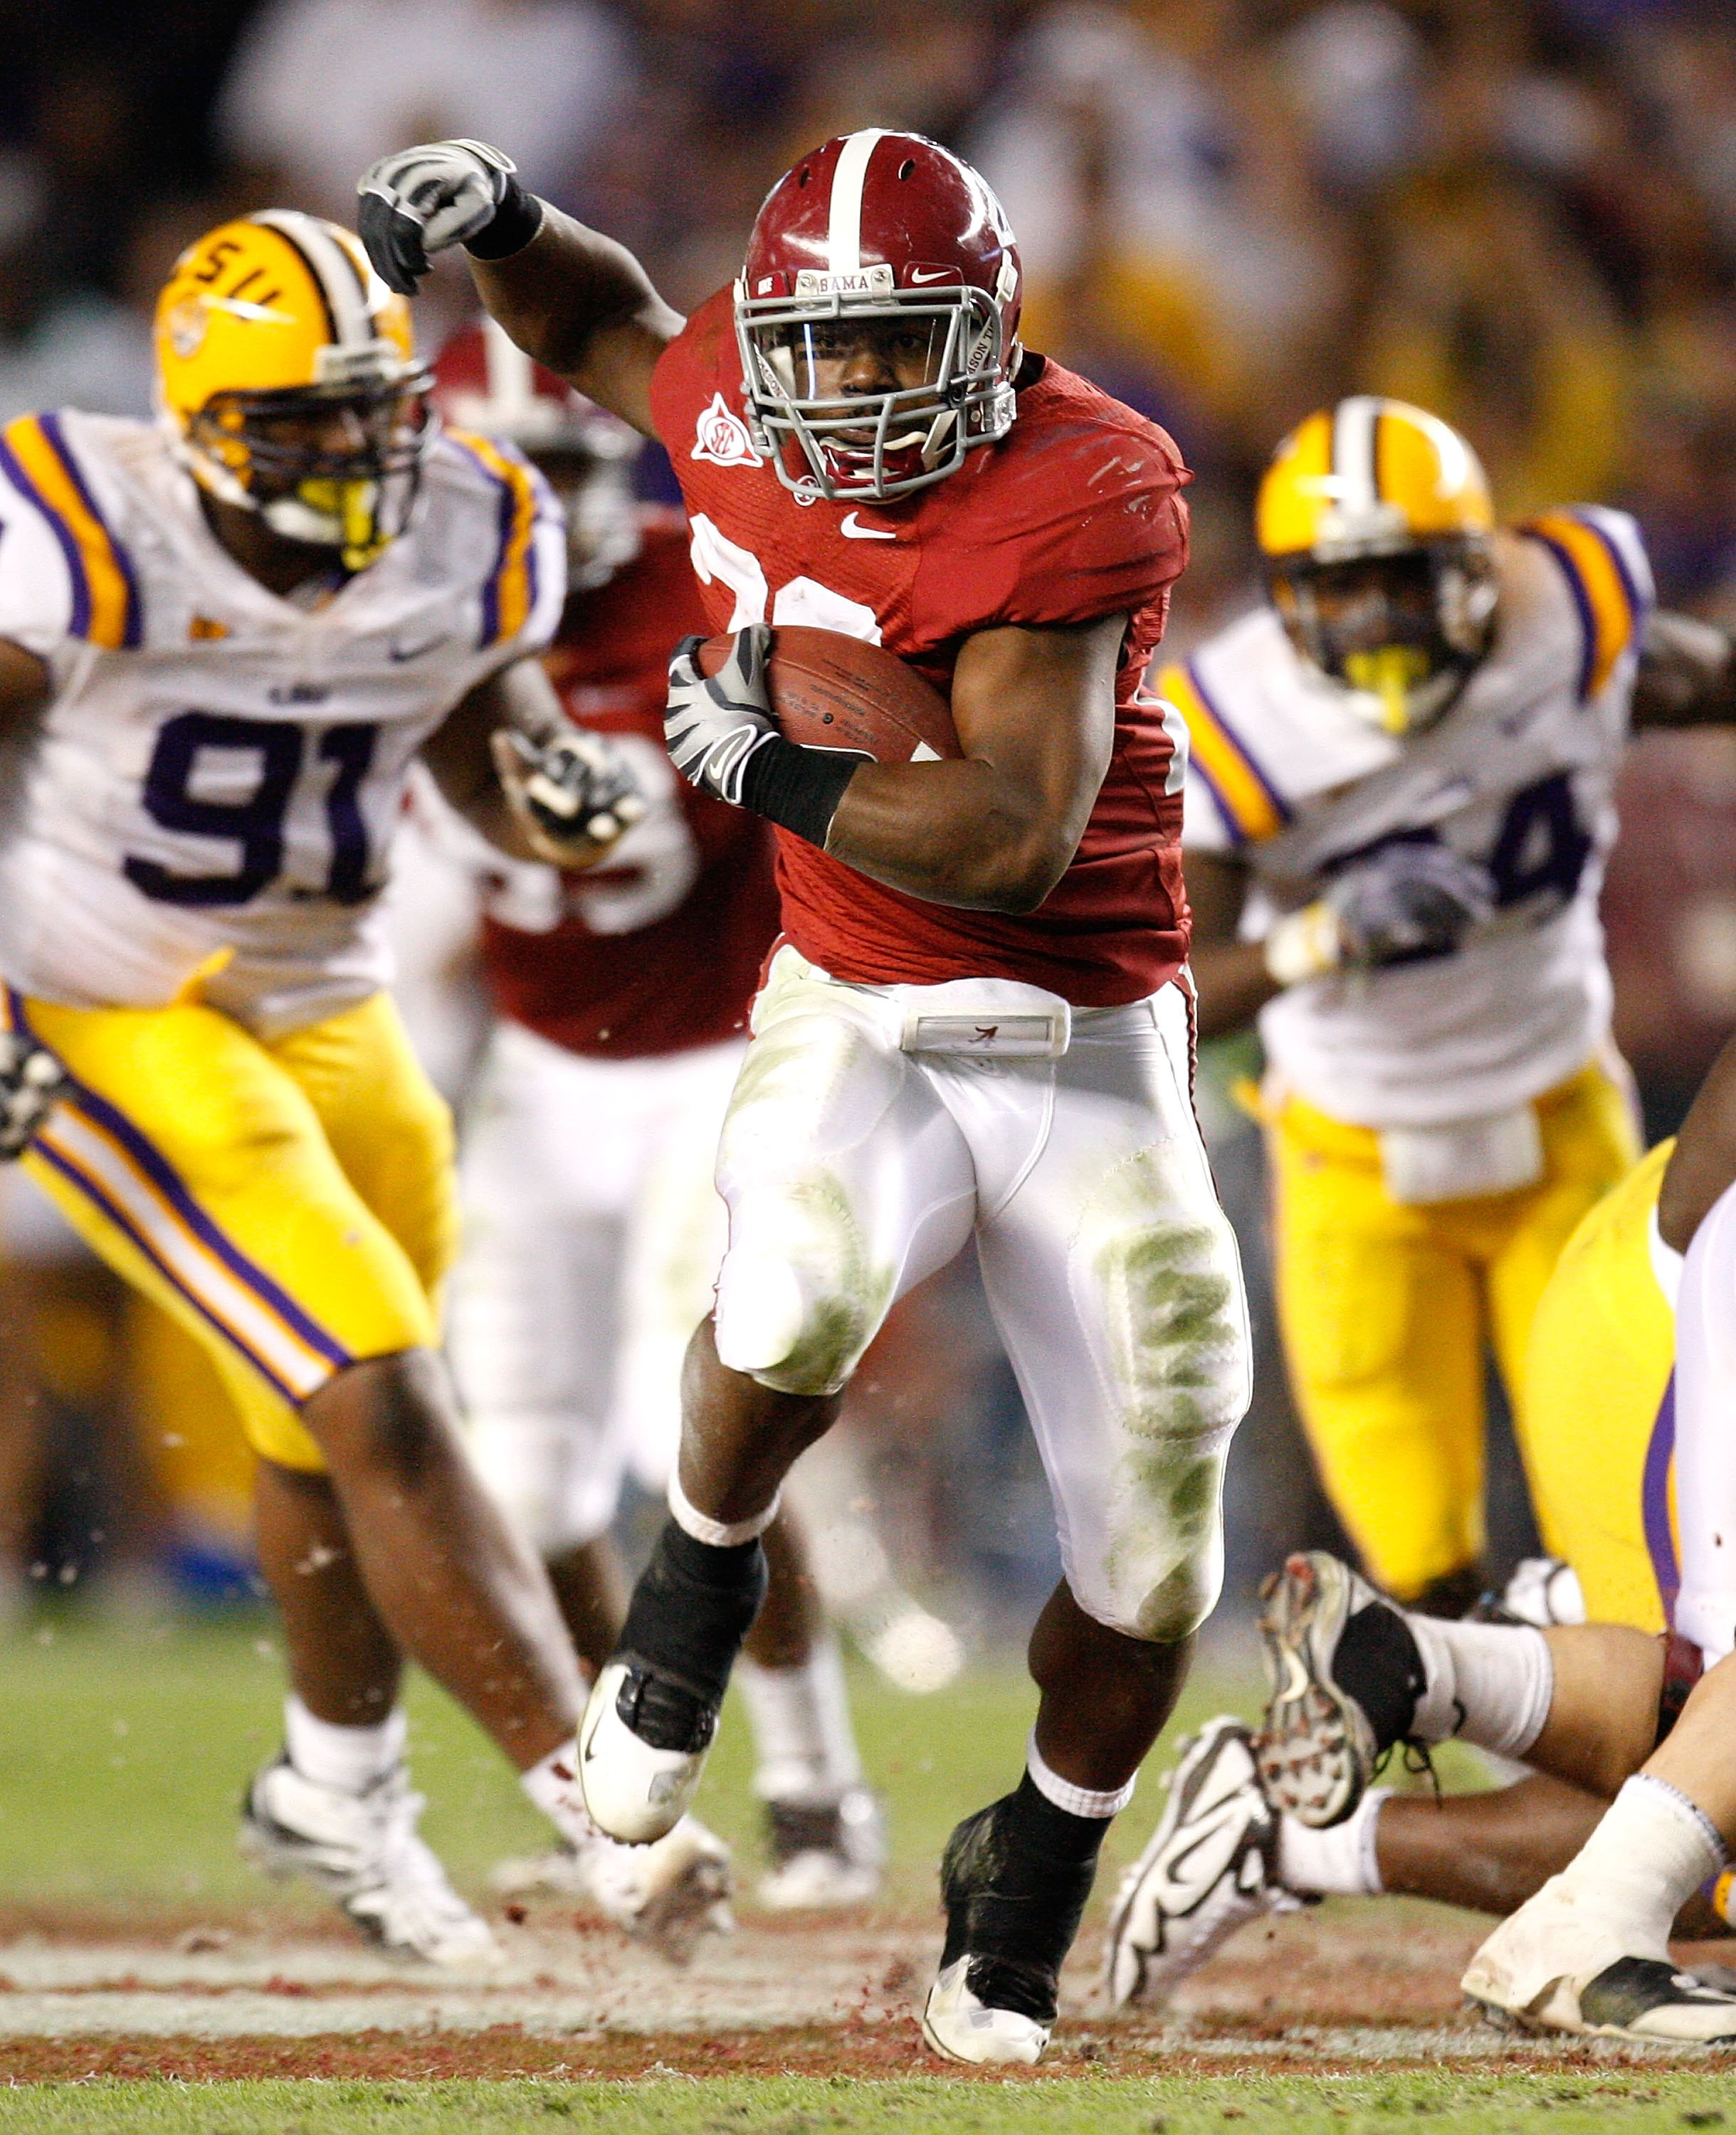 TUSCALOOSA, AL - NOVEMBER 07:  Mark Ingram #22 of the Alabama Crimson Tide against the Louisiana State University Tigers at Bryant-Denny Stadium on November 7, 2009 in Tuscaloosa, Alabama.  (Photo by Kevin C. Cox/Getty Images)